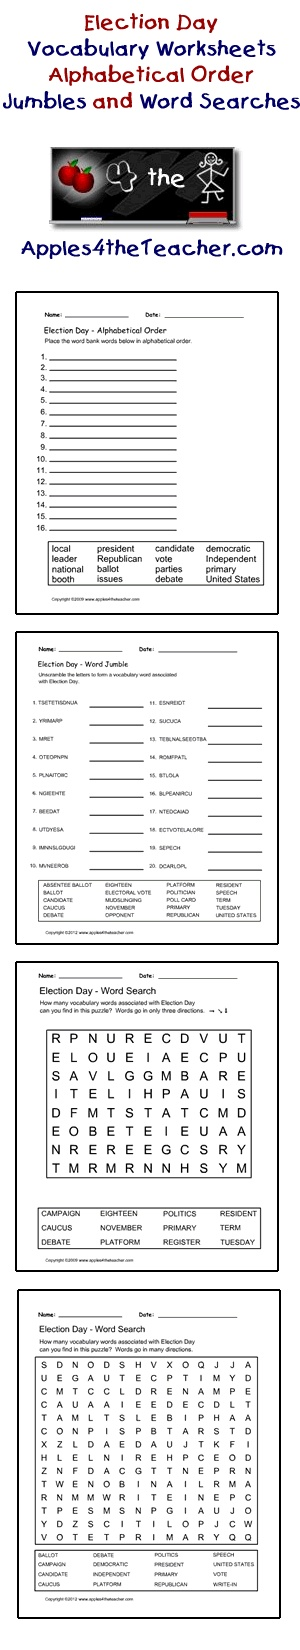 Election Day interactive worksheets, alphabetical order worksheets, word jumble worksheets, word search worksheets.